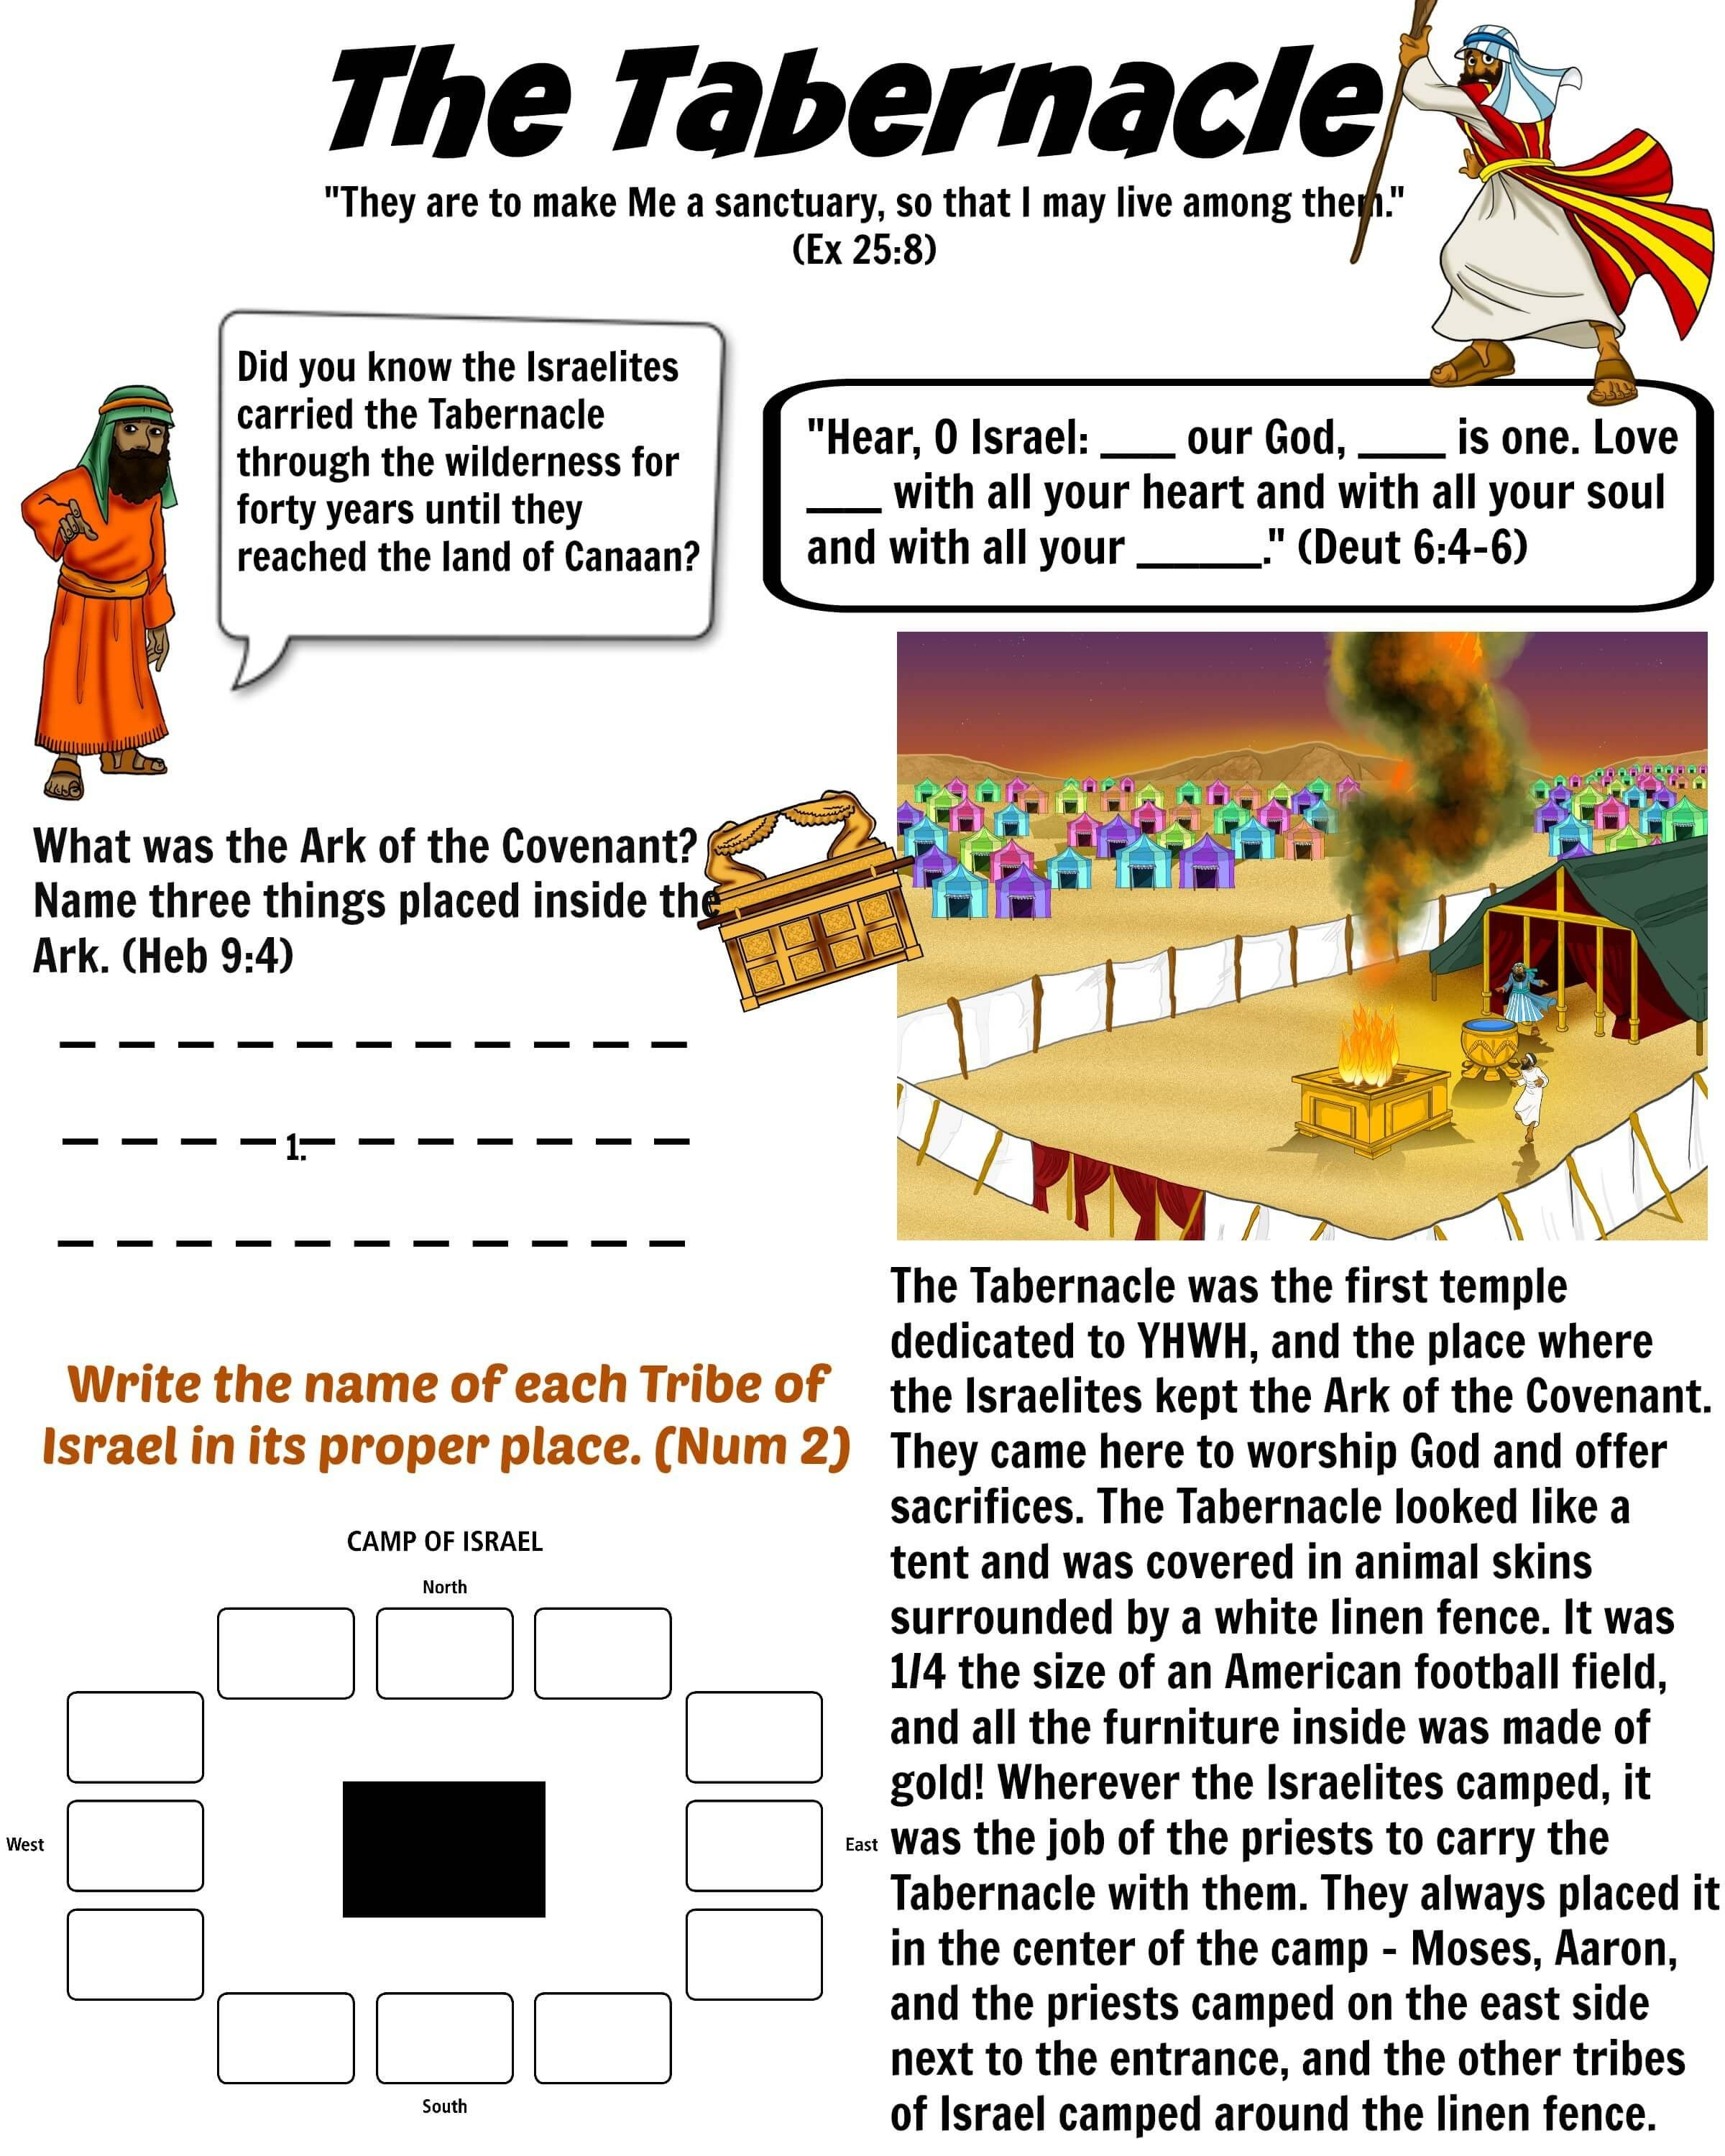 Free Bible Worksheet - The Tabernacle | Moses | Sabbath School - Free Printable Pictures Of The Tabernacle